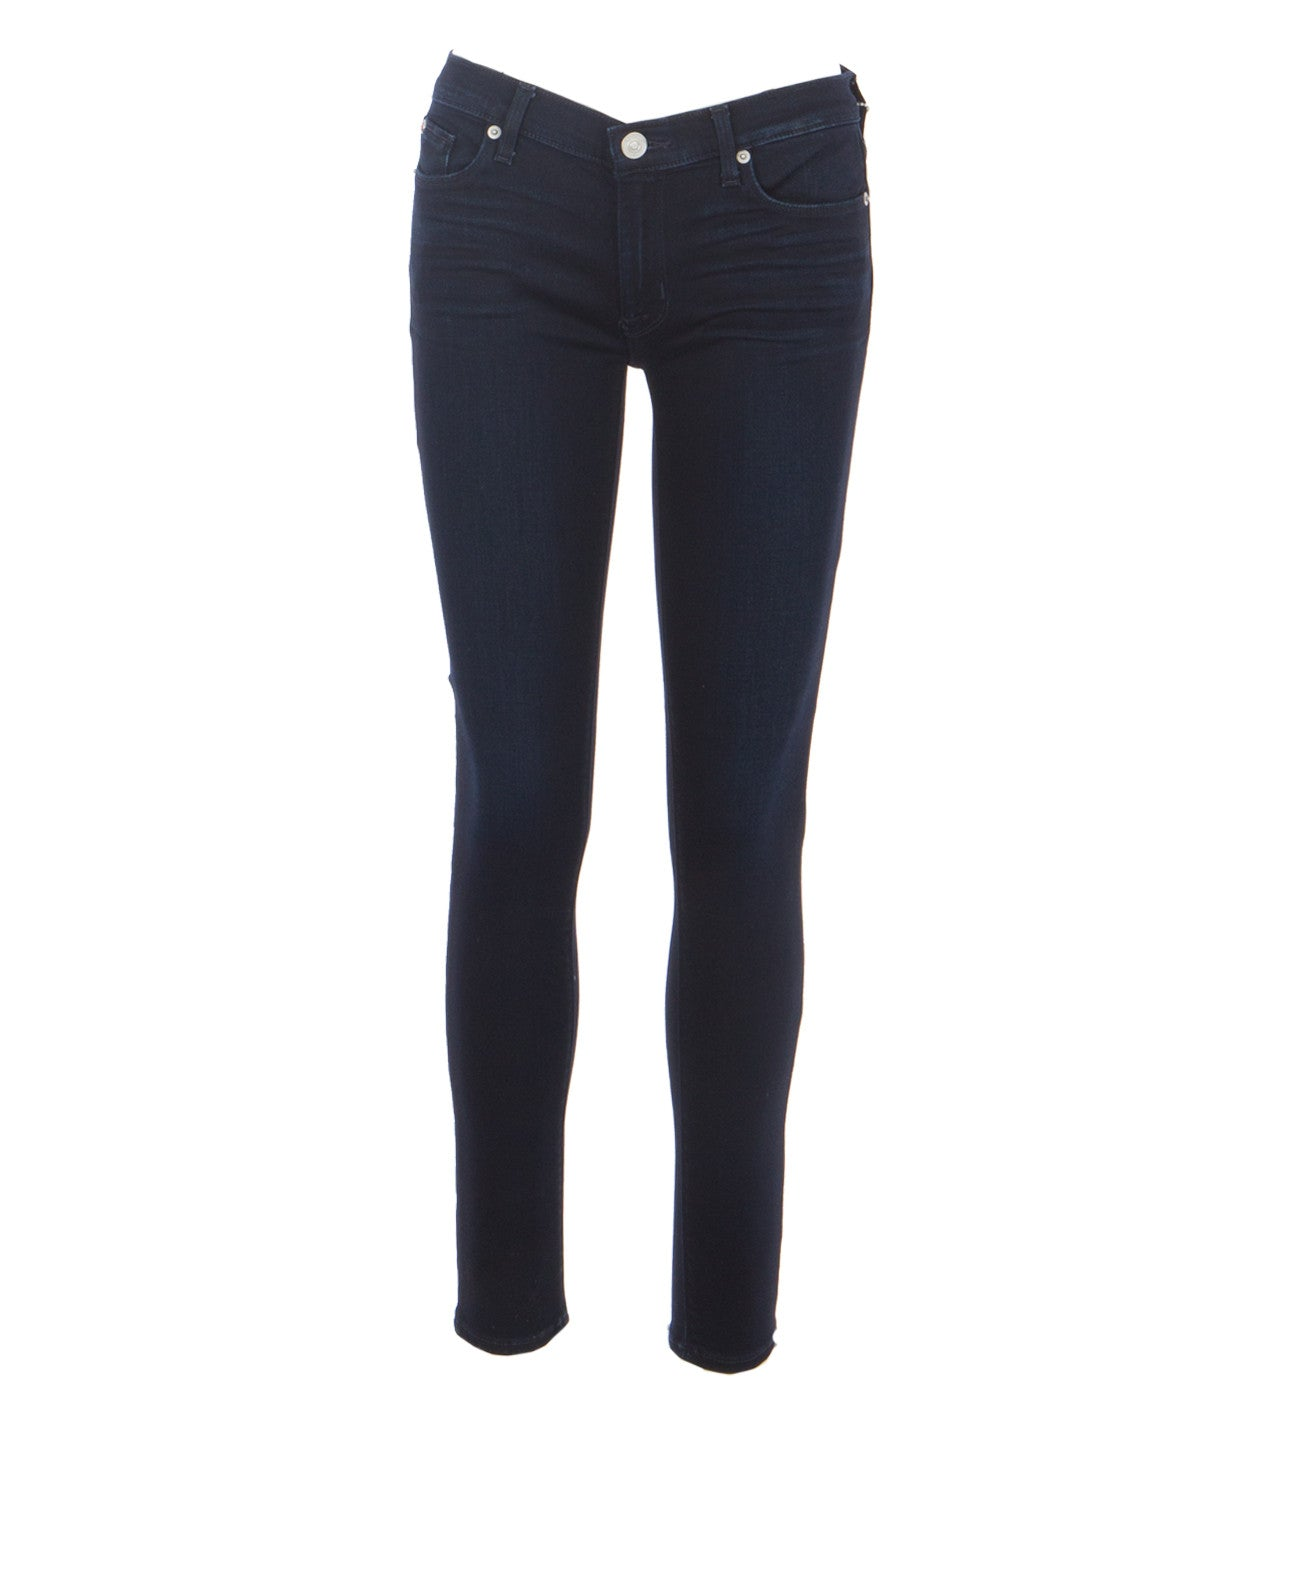 Nico-Dark Nico Darkest Denim Skinny